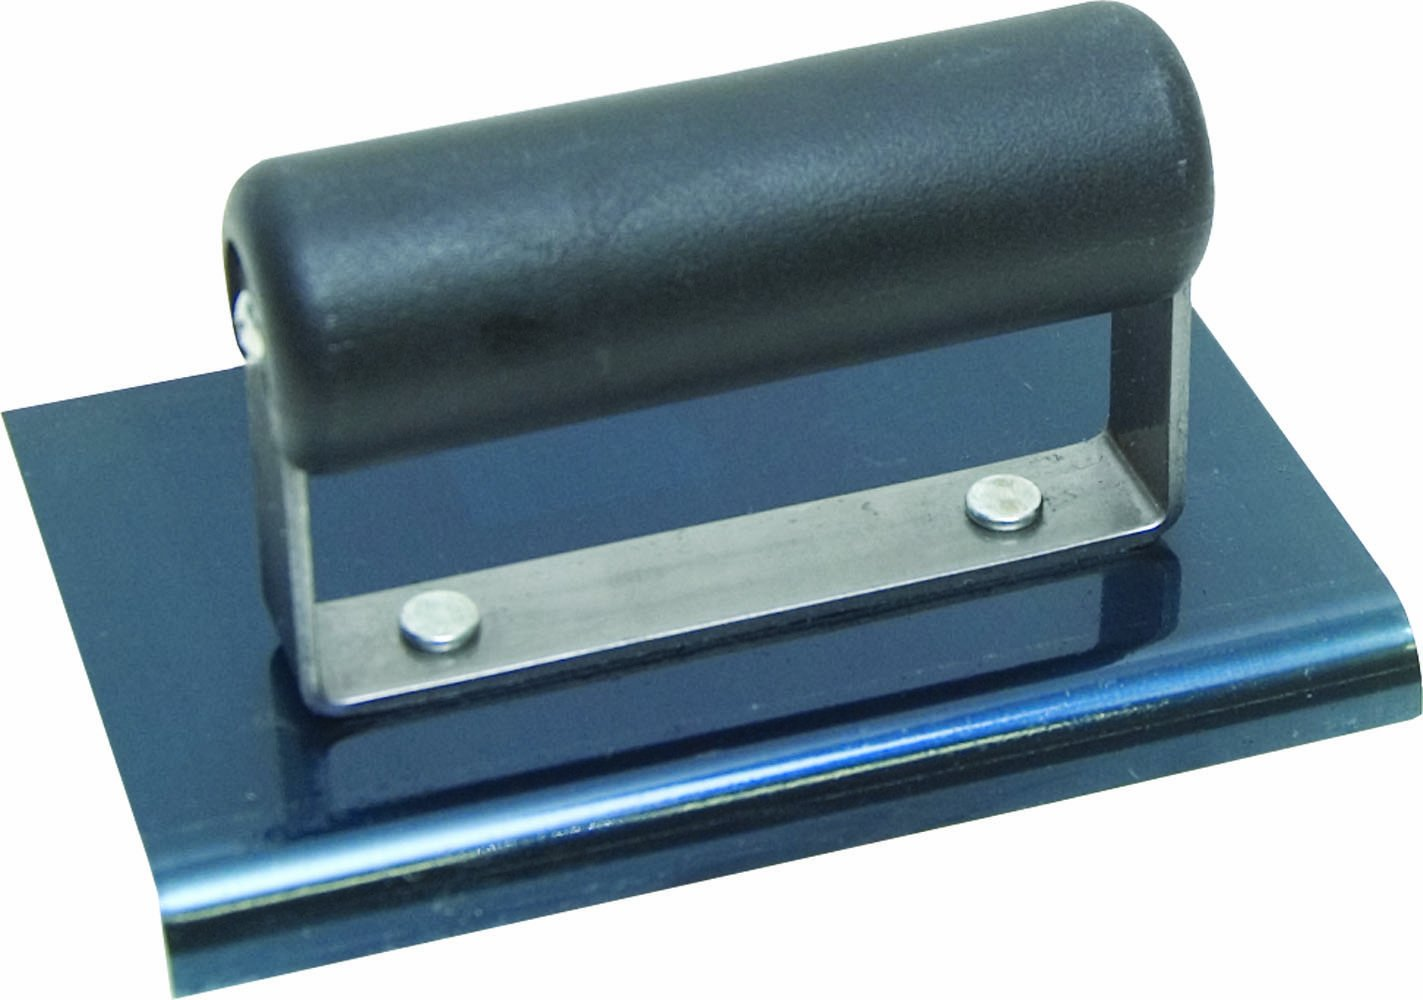 QLT By MARSHALLTOWN CE555BP 6-Inch by 4-Inch Blue Steel Edger with Plastic Handle